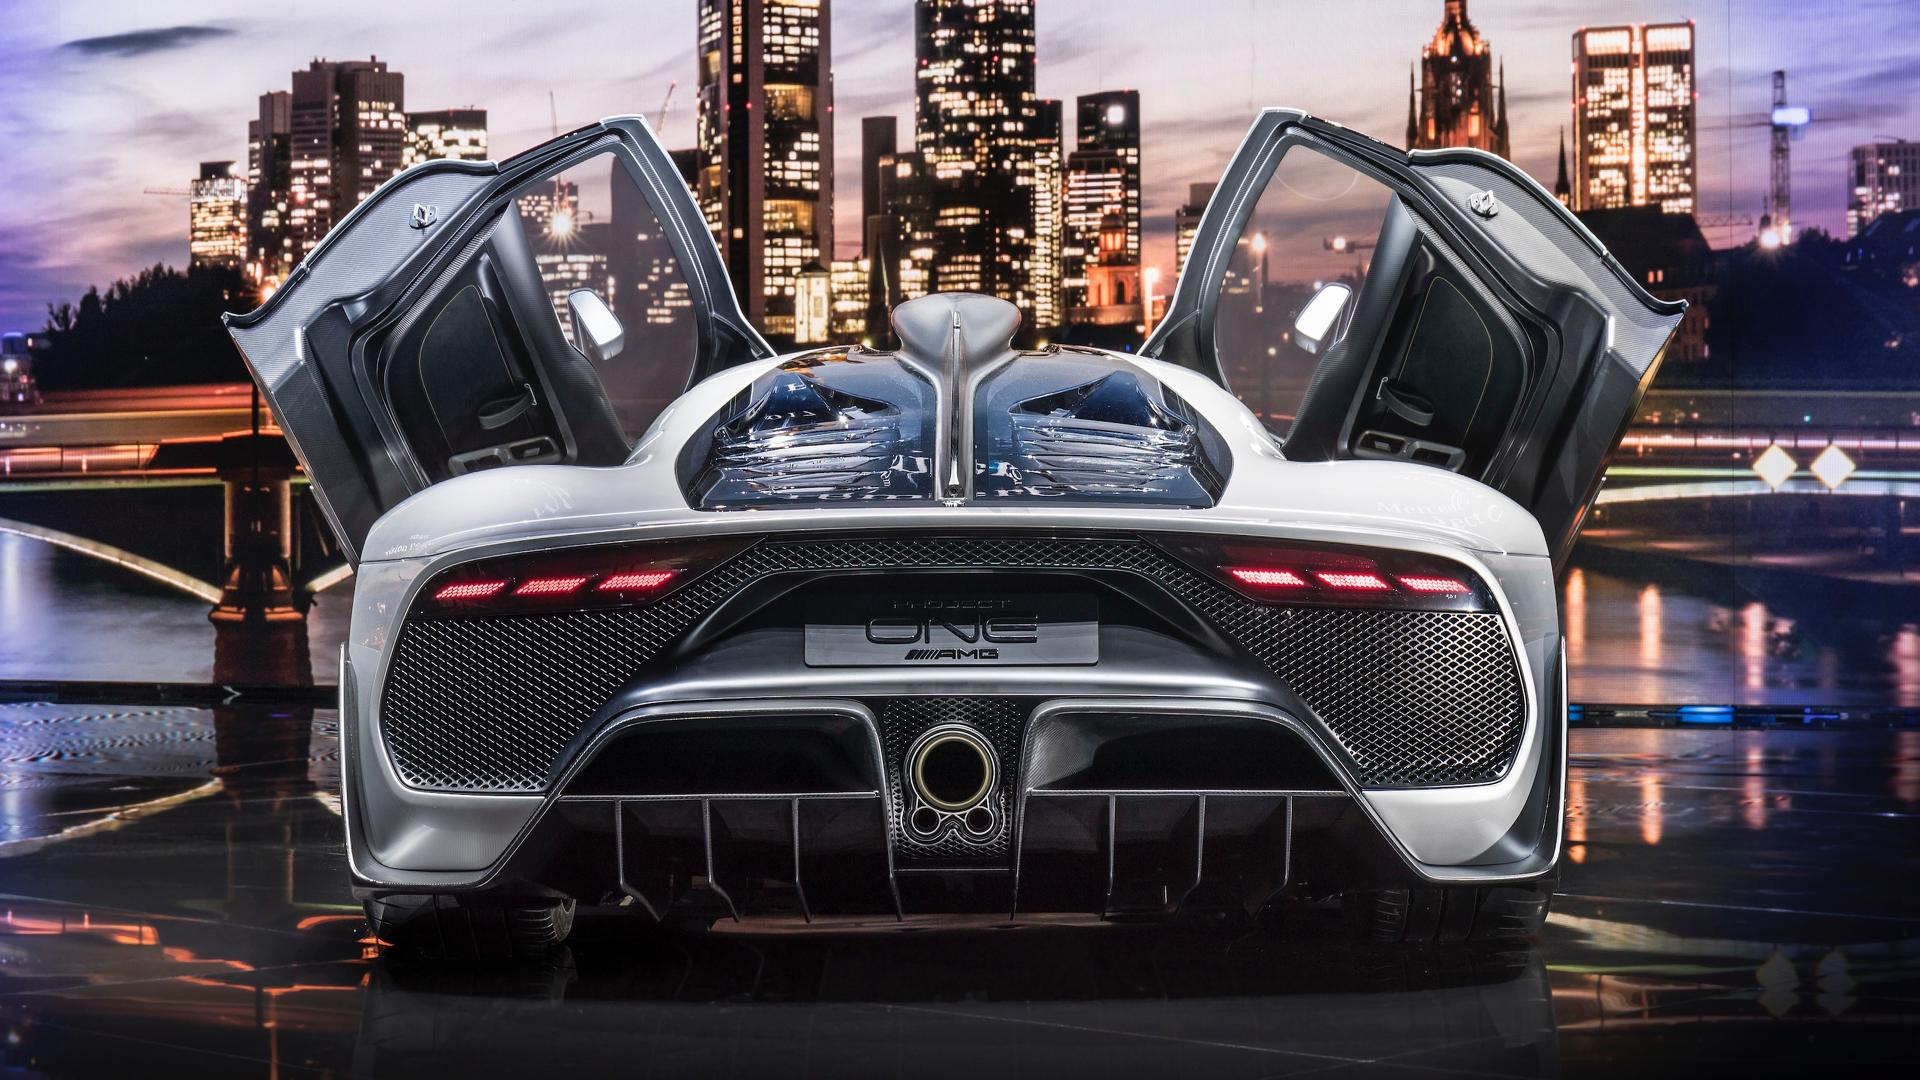 mercedes amg project one successor could arrive by 2025 as an ev. Black Bedroom Furniture Sets. Home Design Ideas